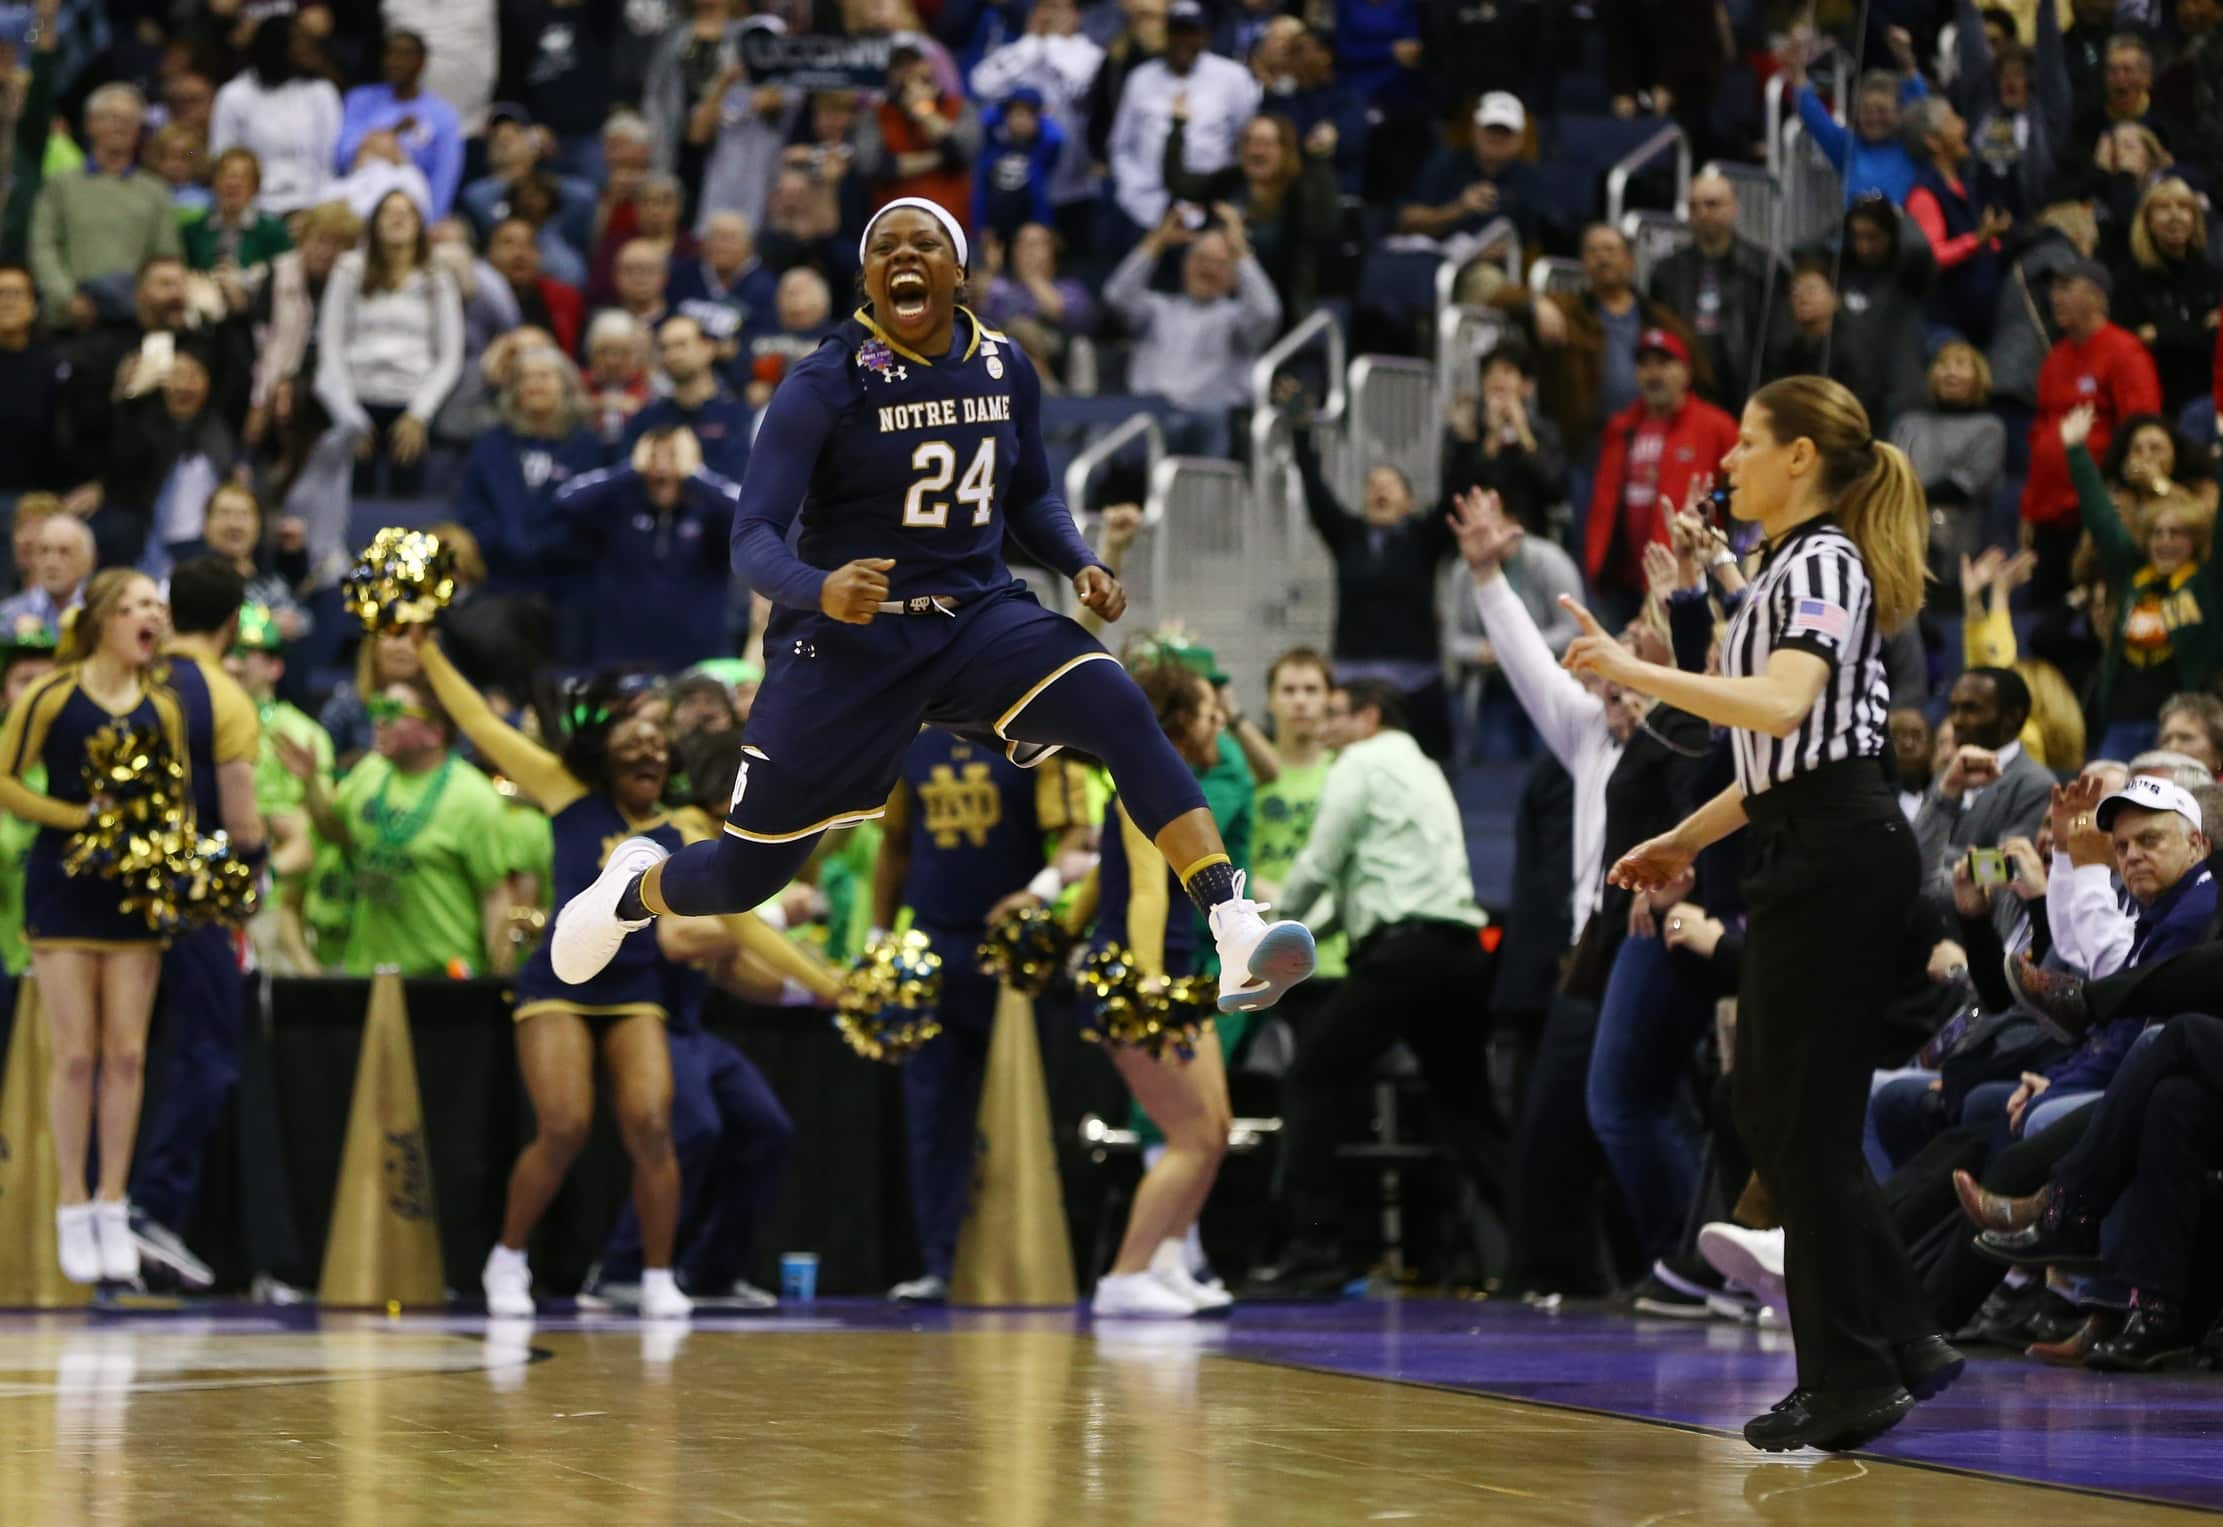 WATCH: Announcers show utter shock as Notre Dame takes down Uconn